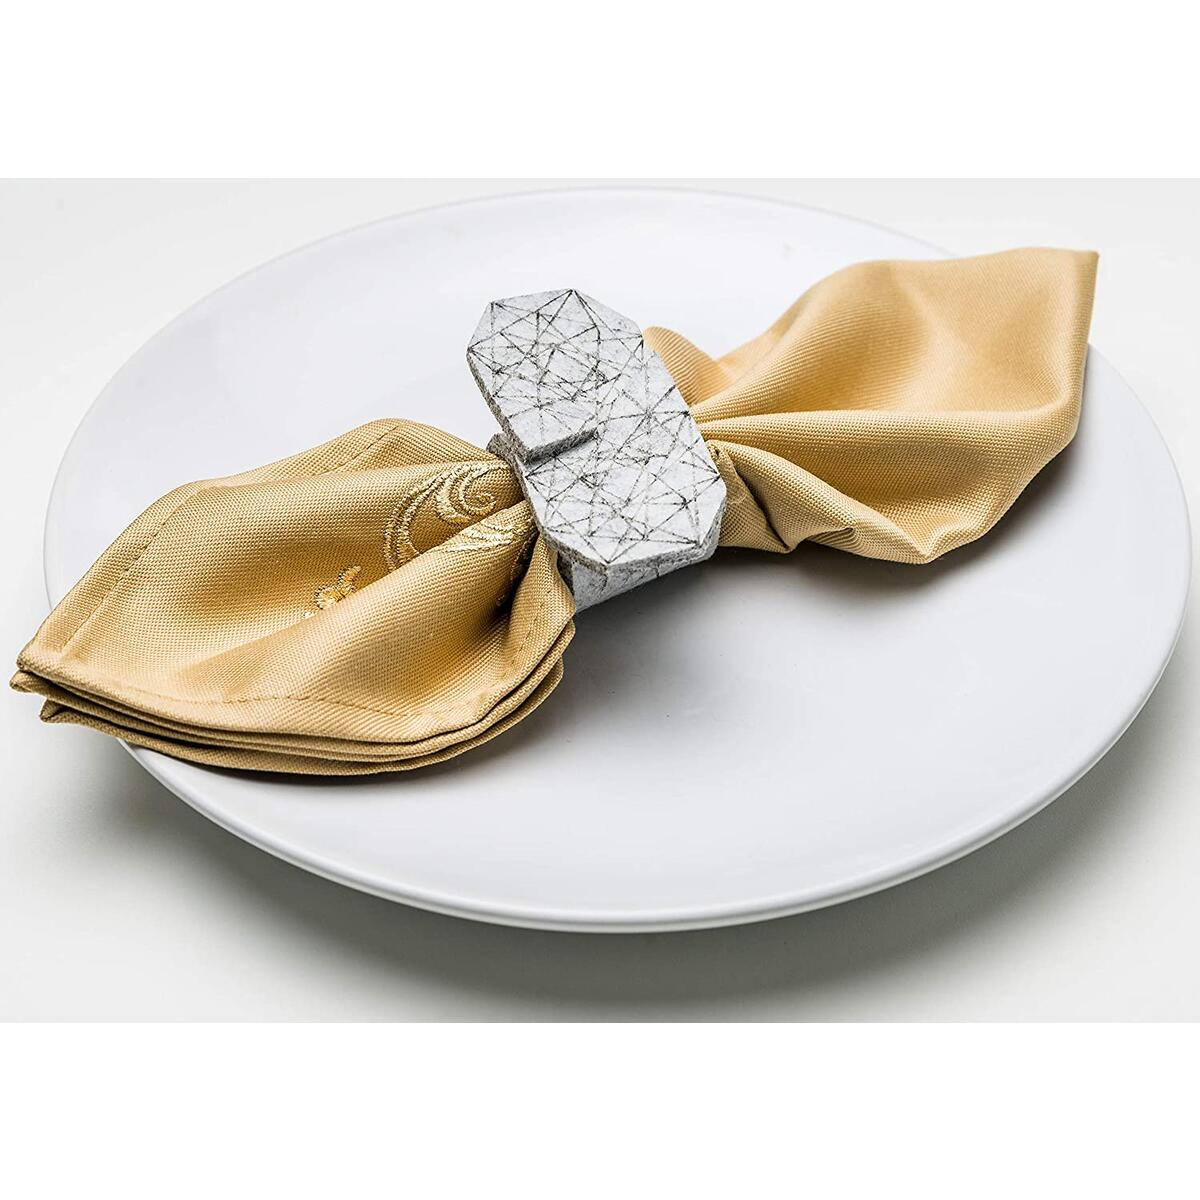 Yashchykov Napkin Ring Set for Wedding (Grey, Felt)